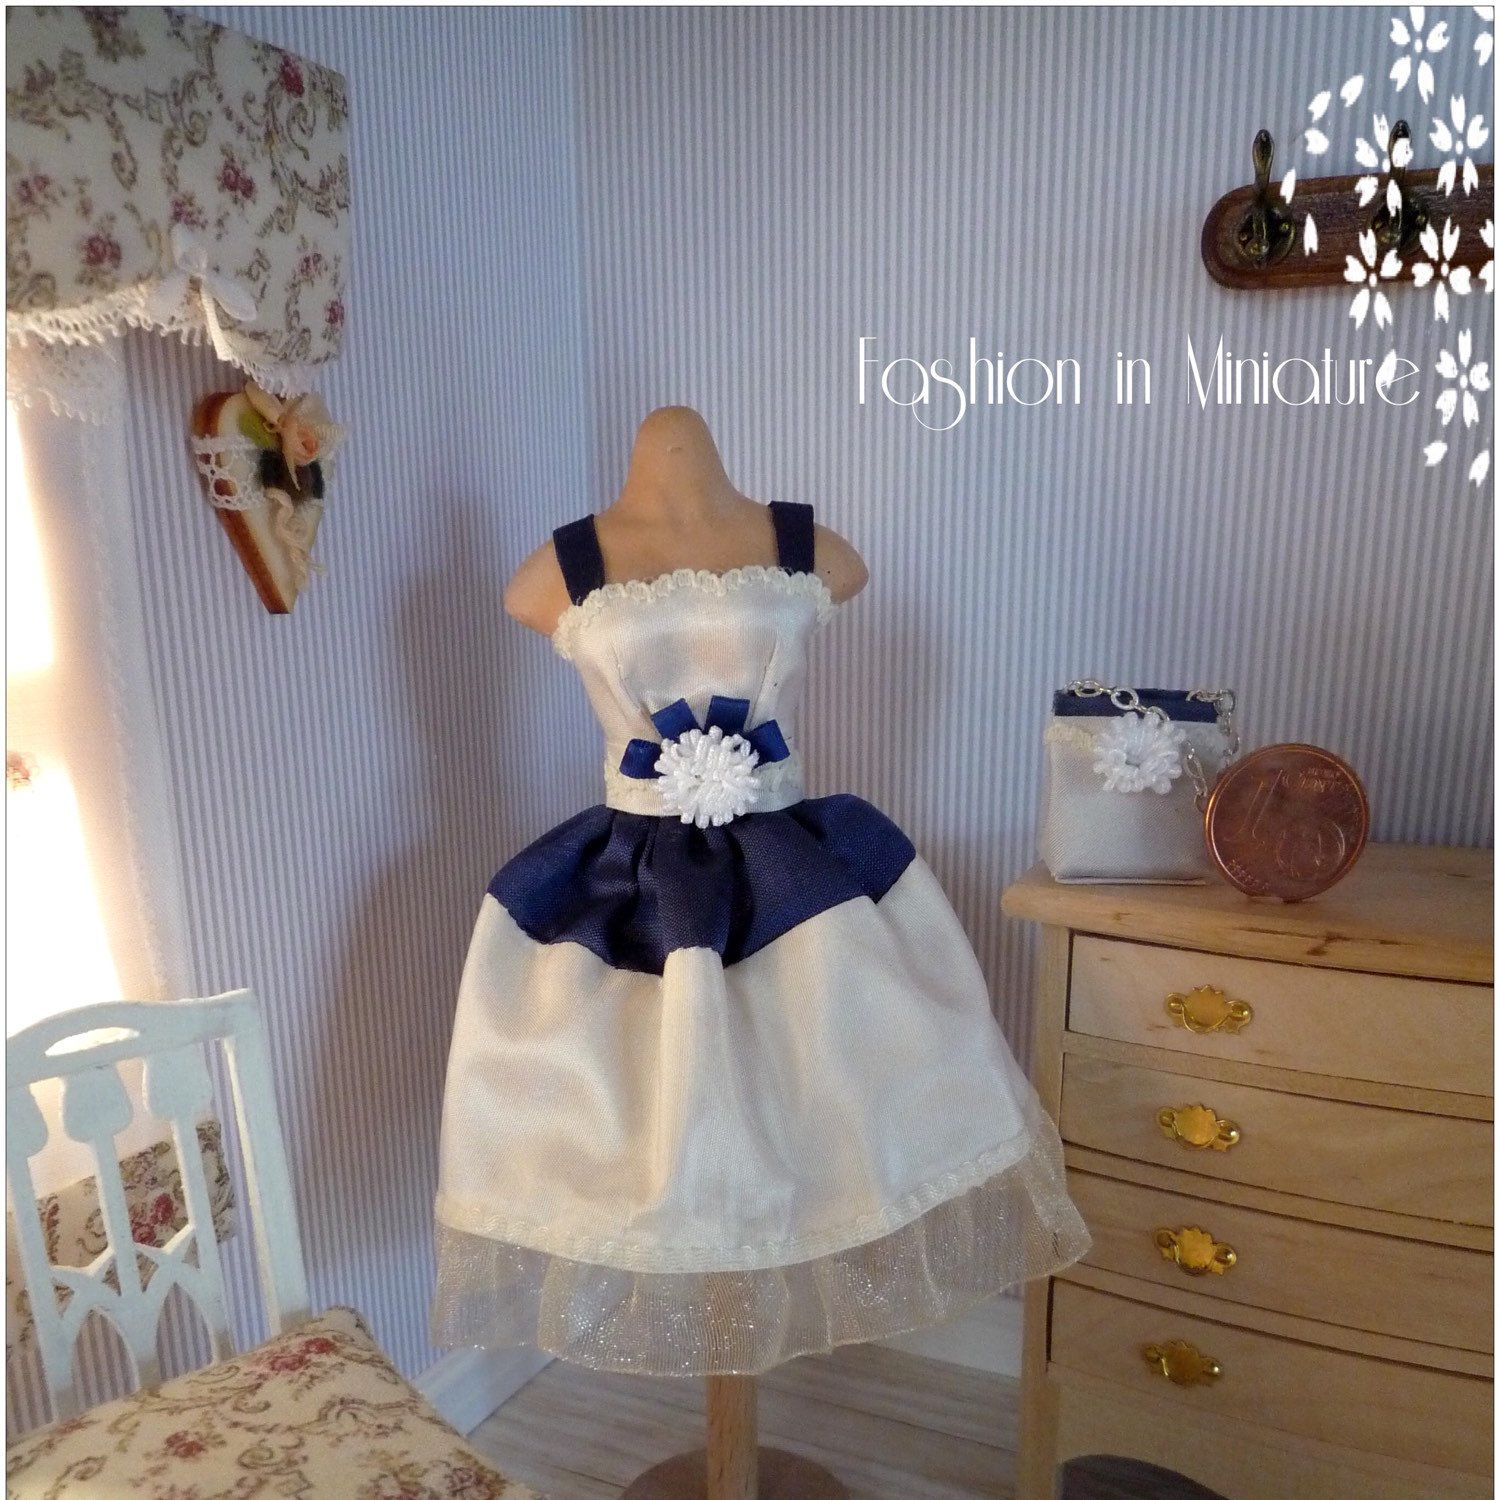 Cocktail dress in white and blue